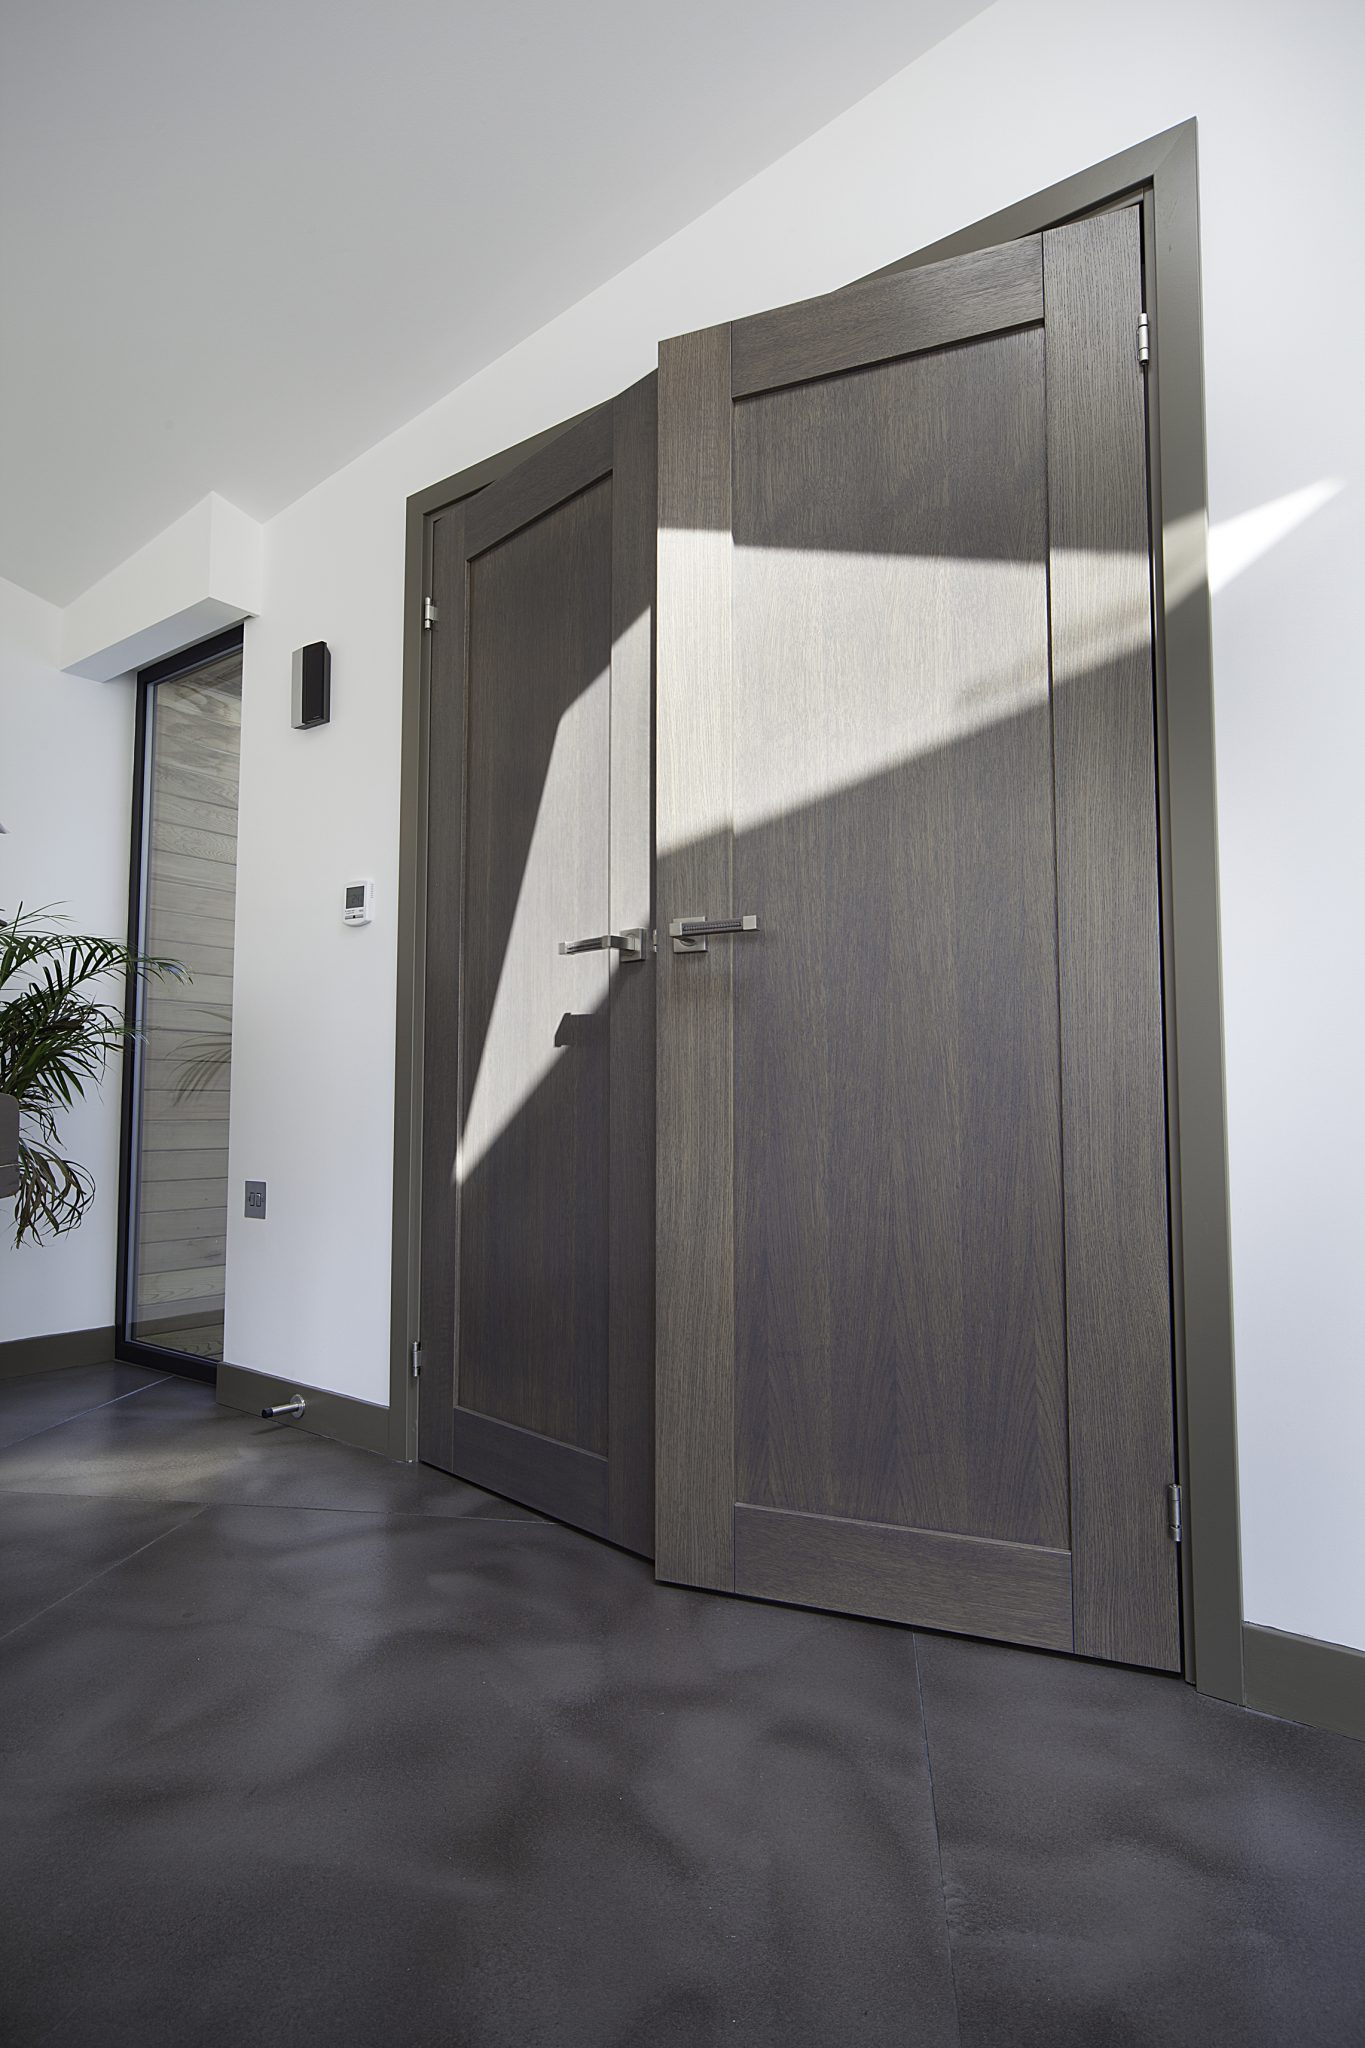 We also offer many signature door options from some of Europe\u0027s top designers that make for beautiful statement pieces. & Interior Doors - Bonsai Group